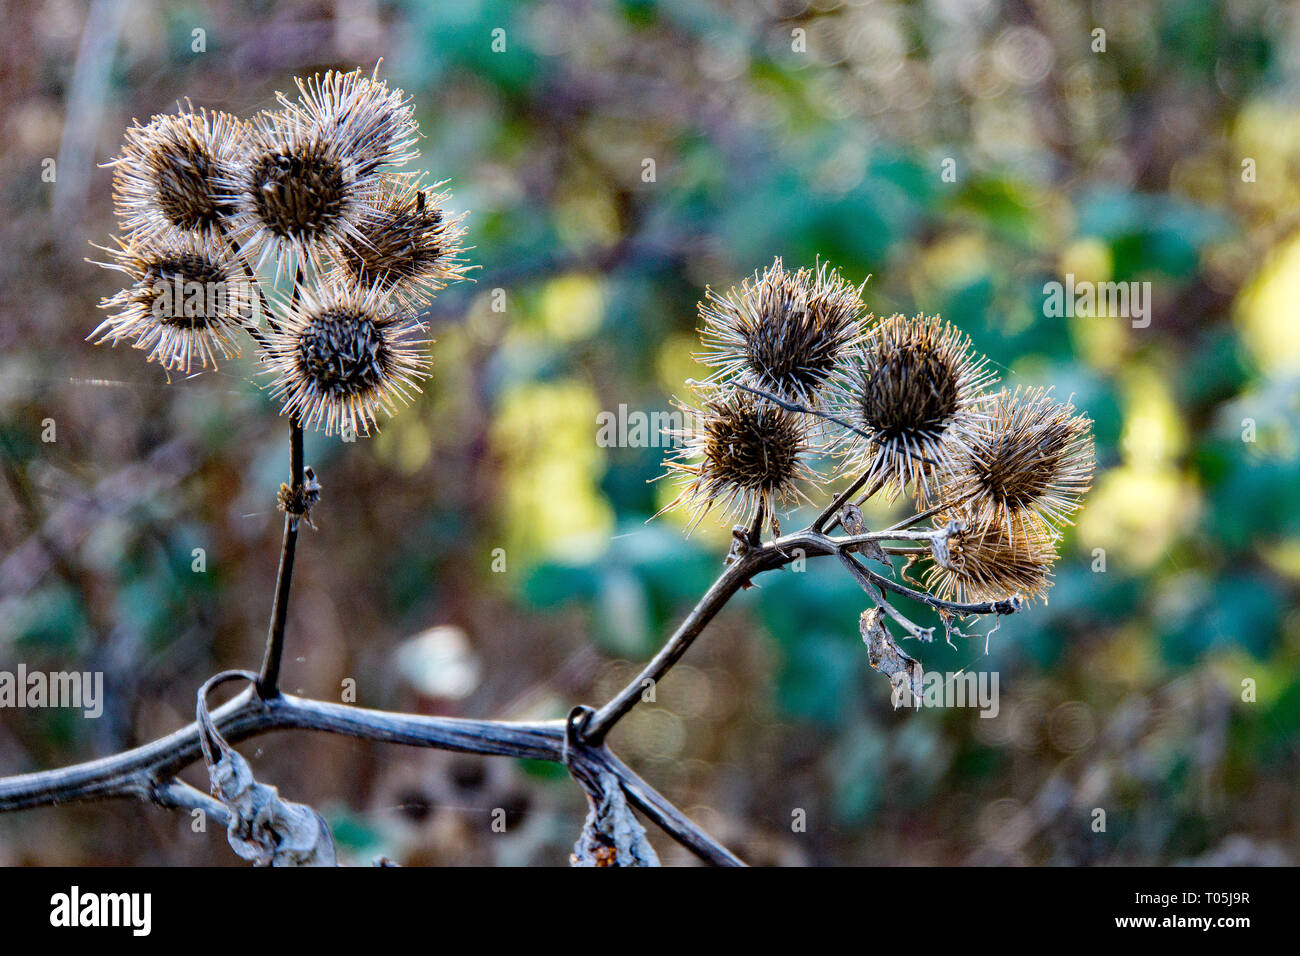 The  prickly Herb Burdock plant or Arctium plant from the  Asteraceae family. This one grows wild in Hertfordshire on the banks of the river Stort. - Stock Image